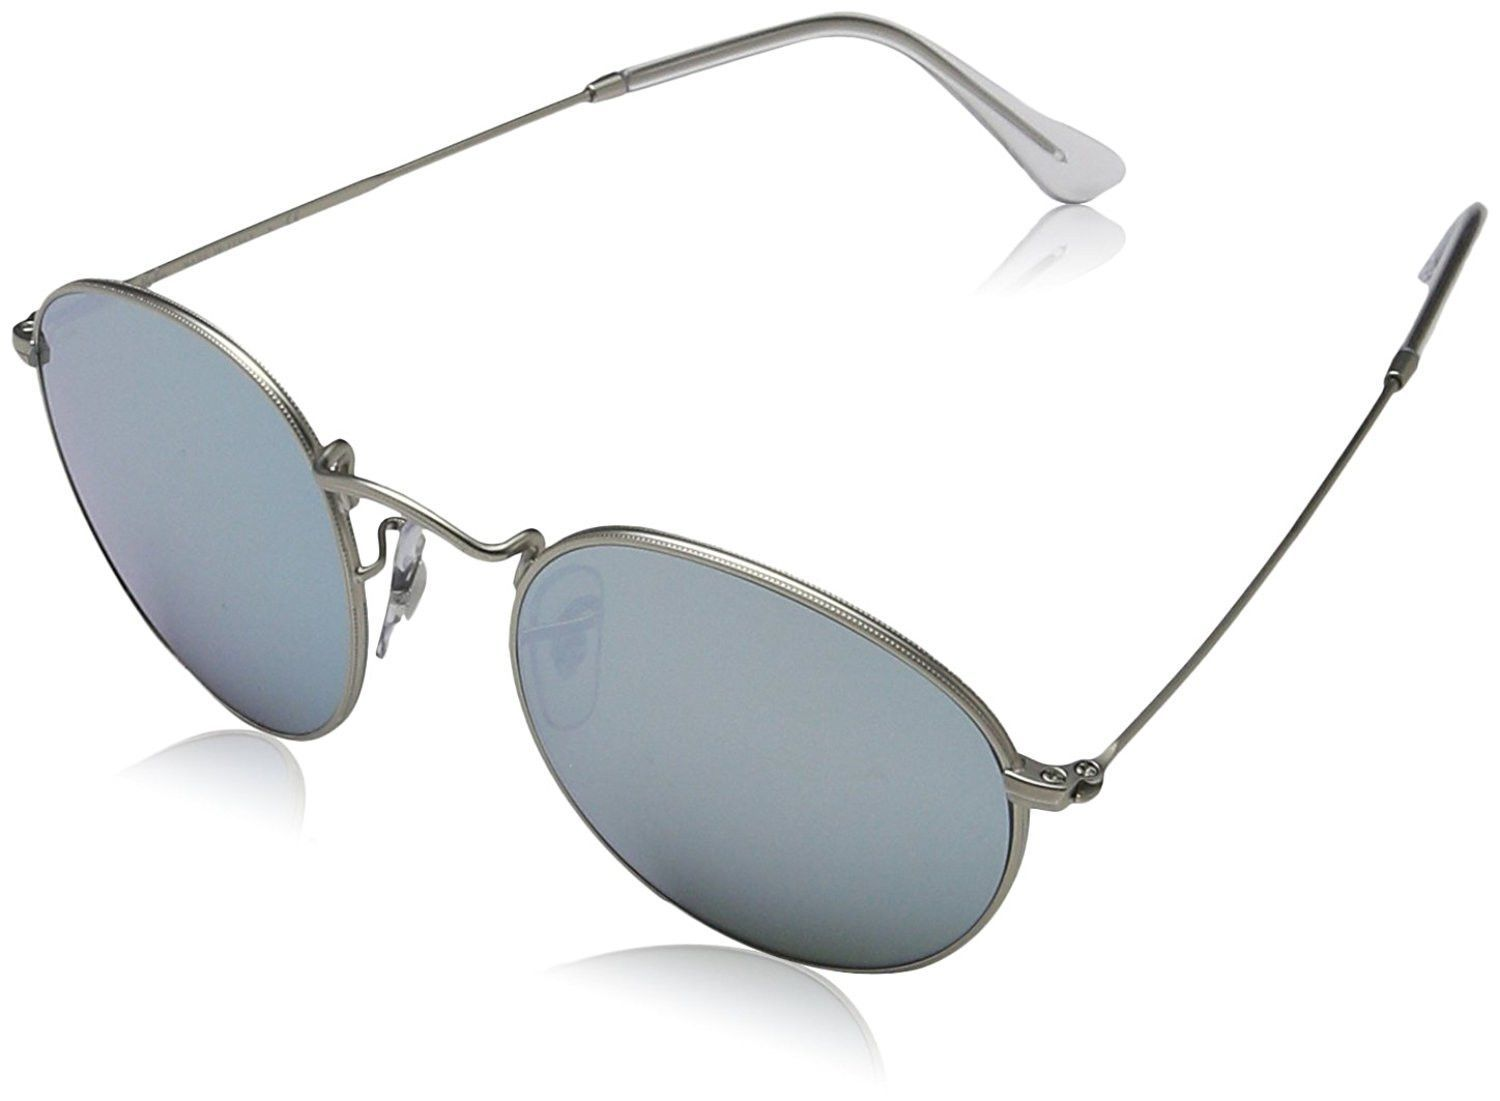 Ray Ban Sunglasses Drawing at GetDrawings.com | Free for personal ...